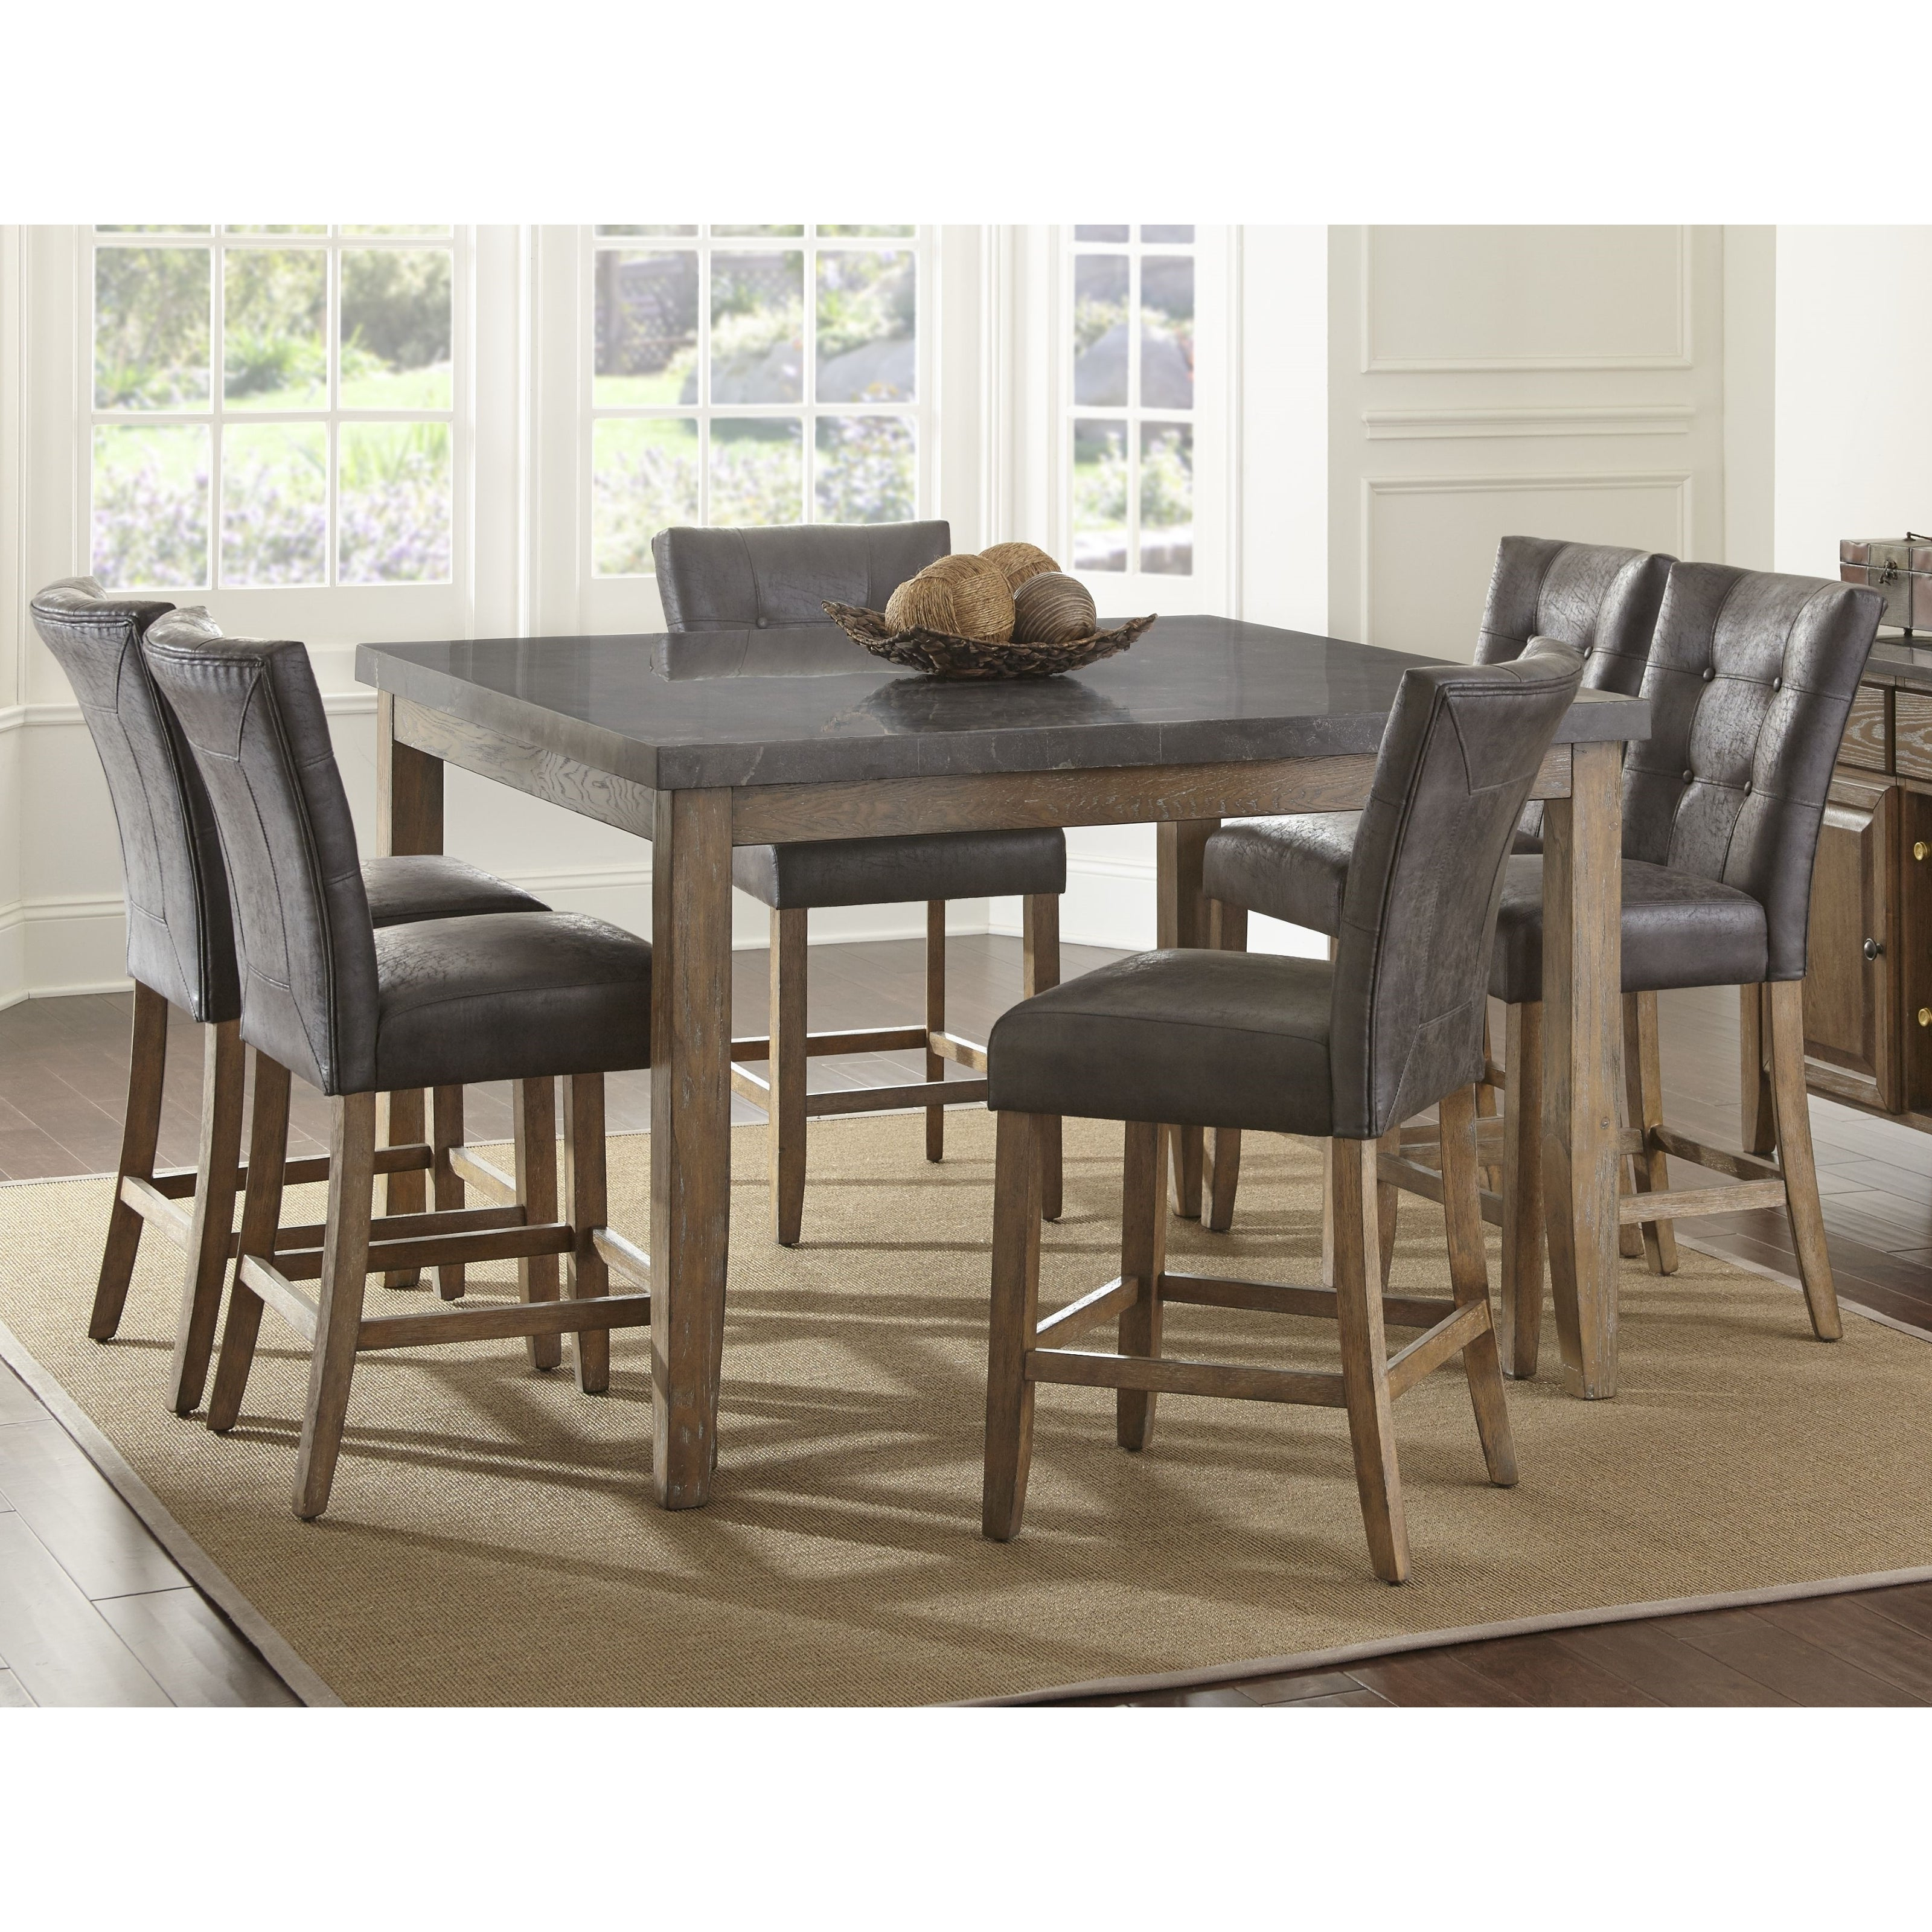 Buy 7 Piece Sets Kitchen & Dining Room Sets Online At Overstock Pertaining To Fashionable Autberry 5 Piece Dining Sets (View 8 of 25)